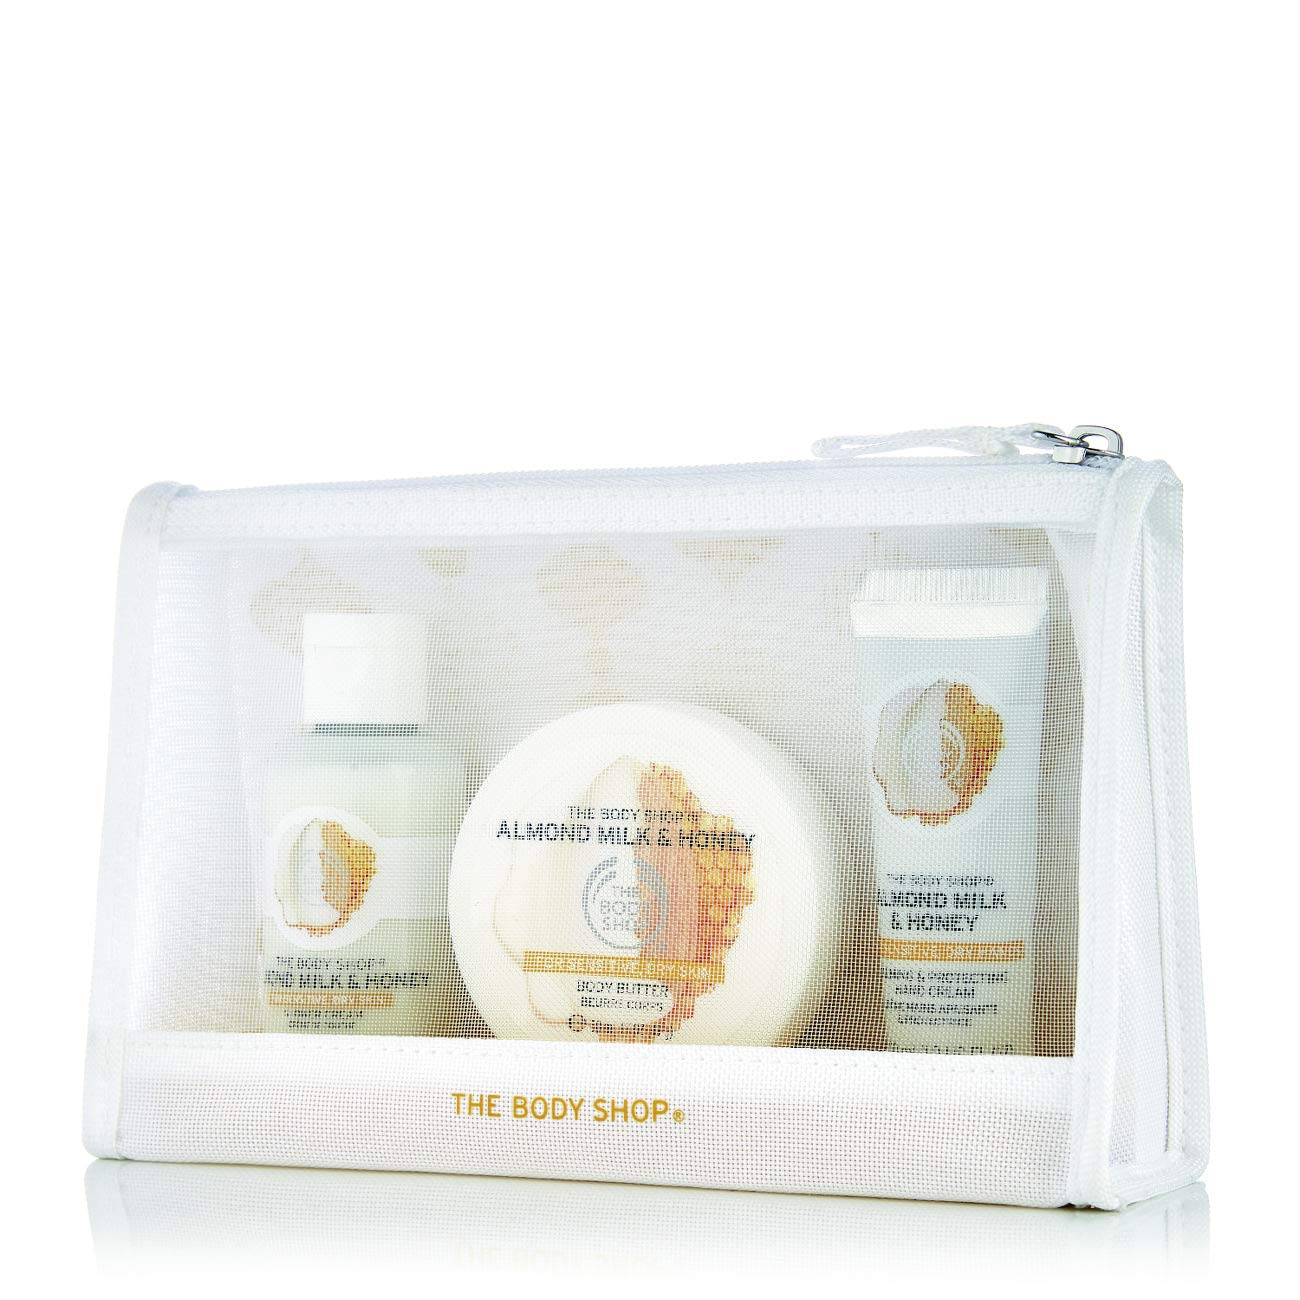 The Body Shop Almond Milk and Honey Beauty Bag Gift Set, 3pc Bath and Body Gift Set, Dermatologically Tested for Dry, Sensitive Skin